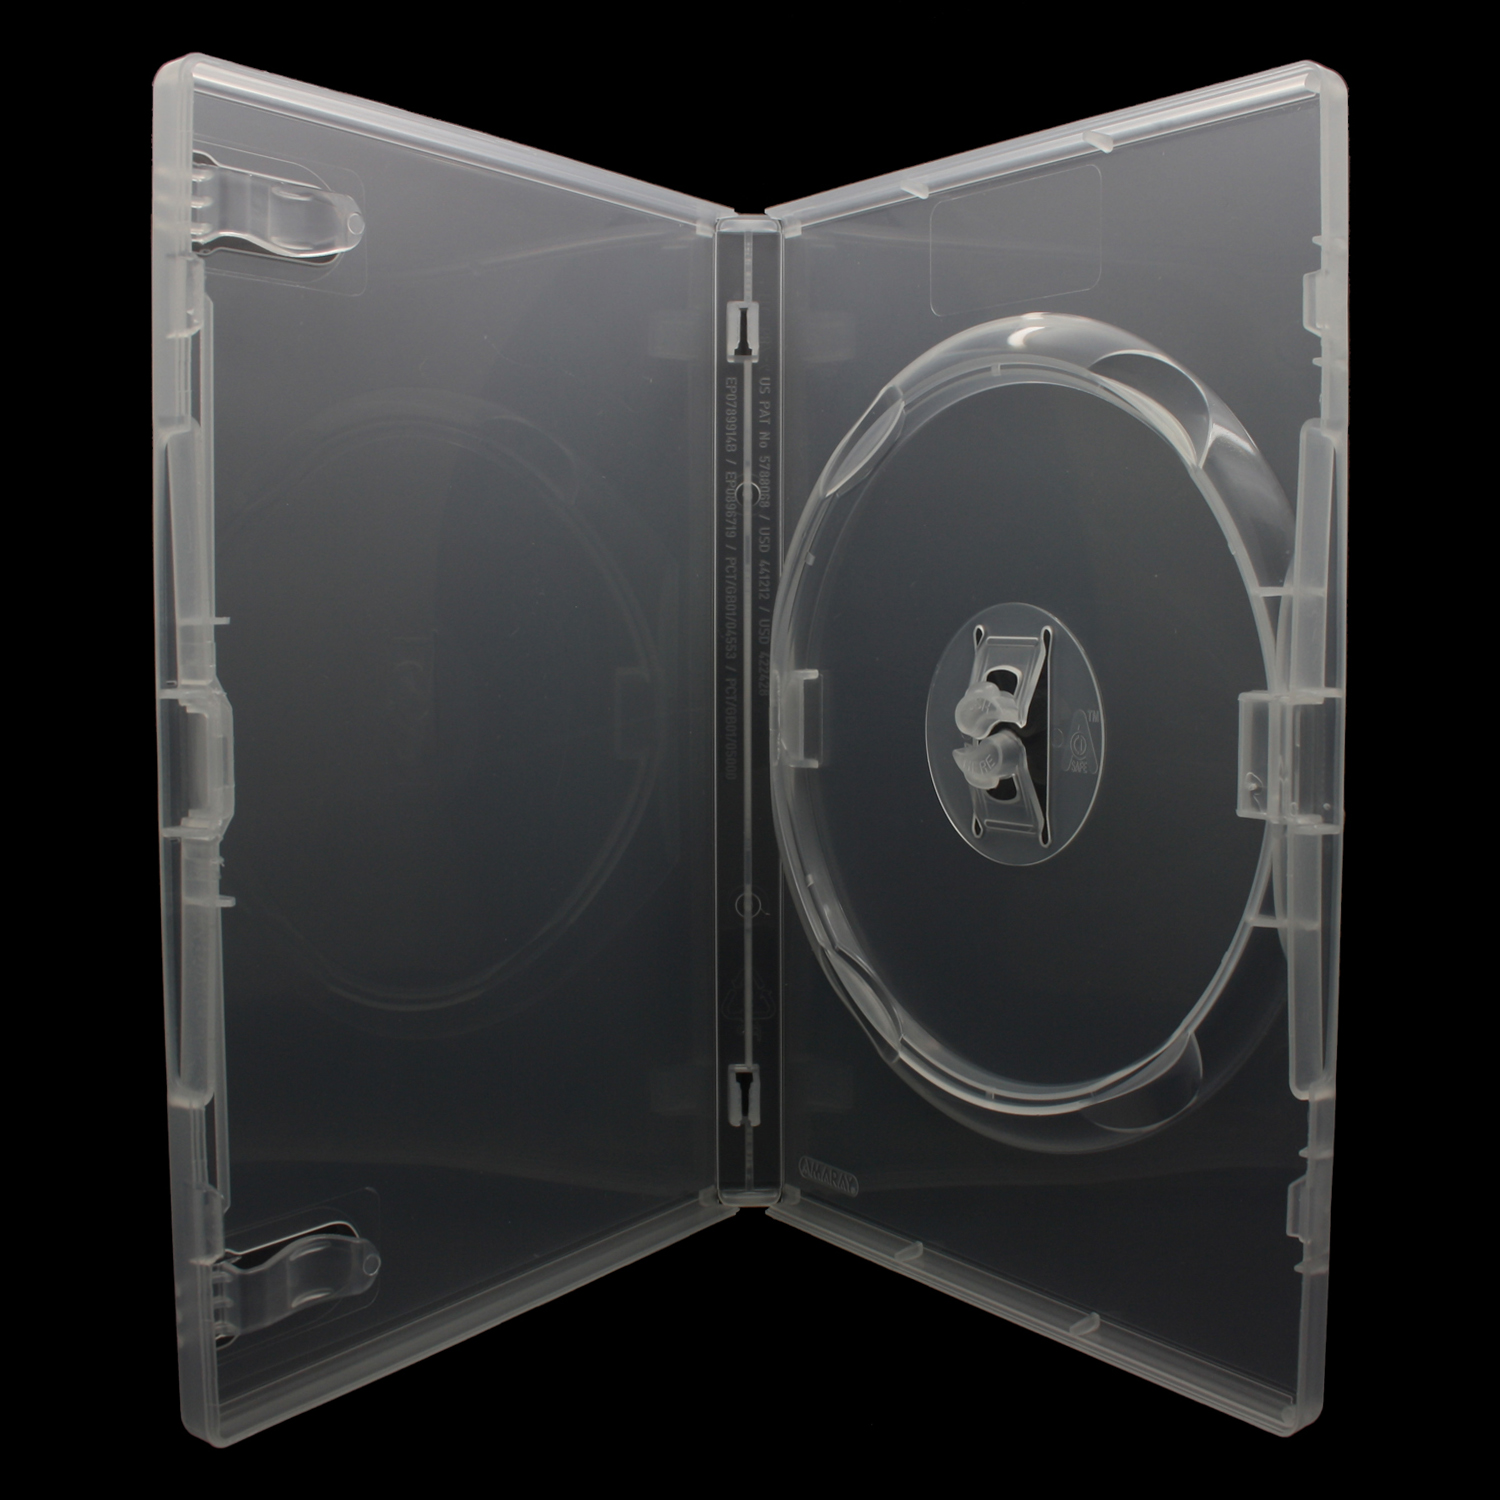 100 x AMARAY DVD Hüllen für 1 CD / DVD / Blu-Ray [14mm] Transparent